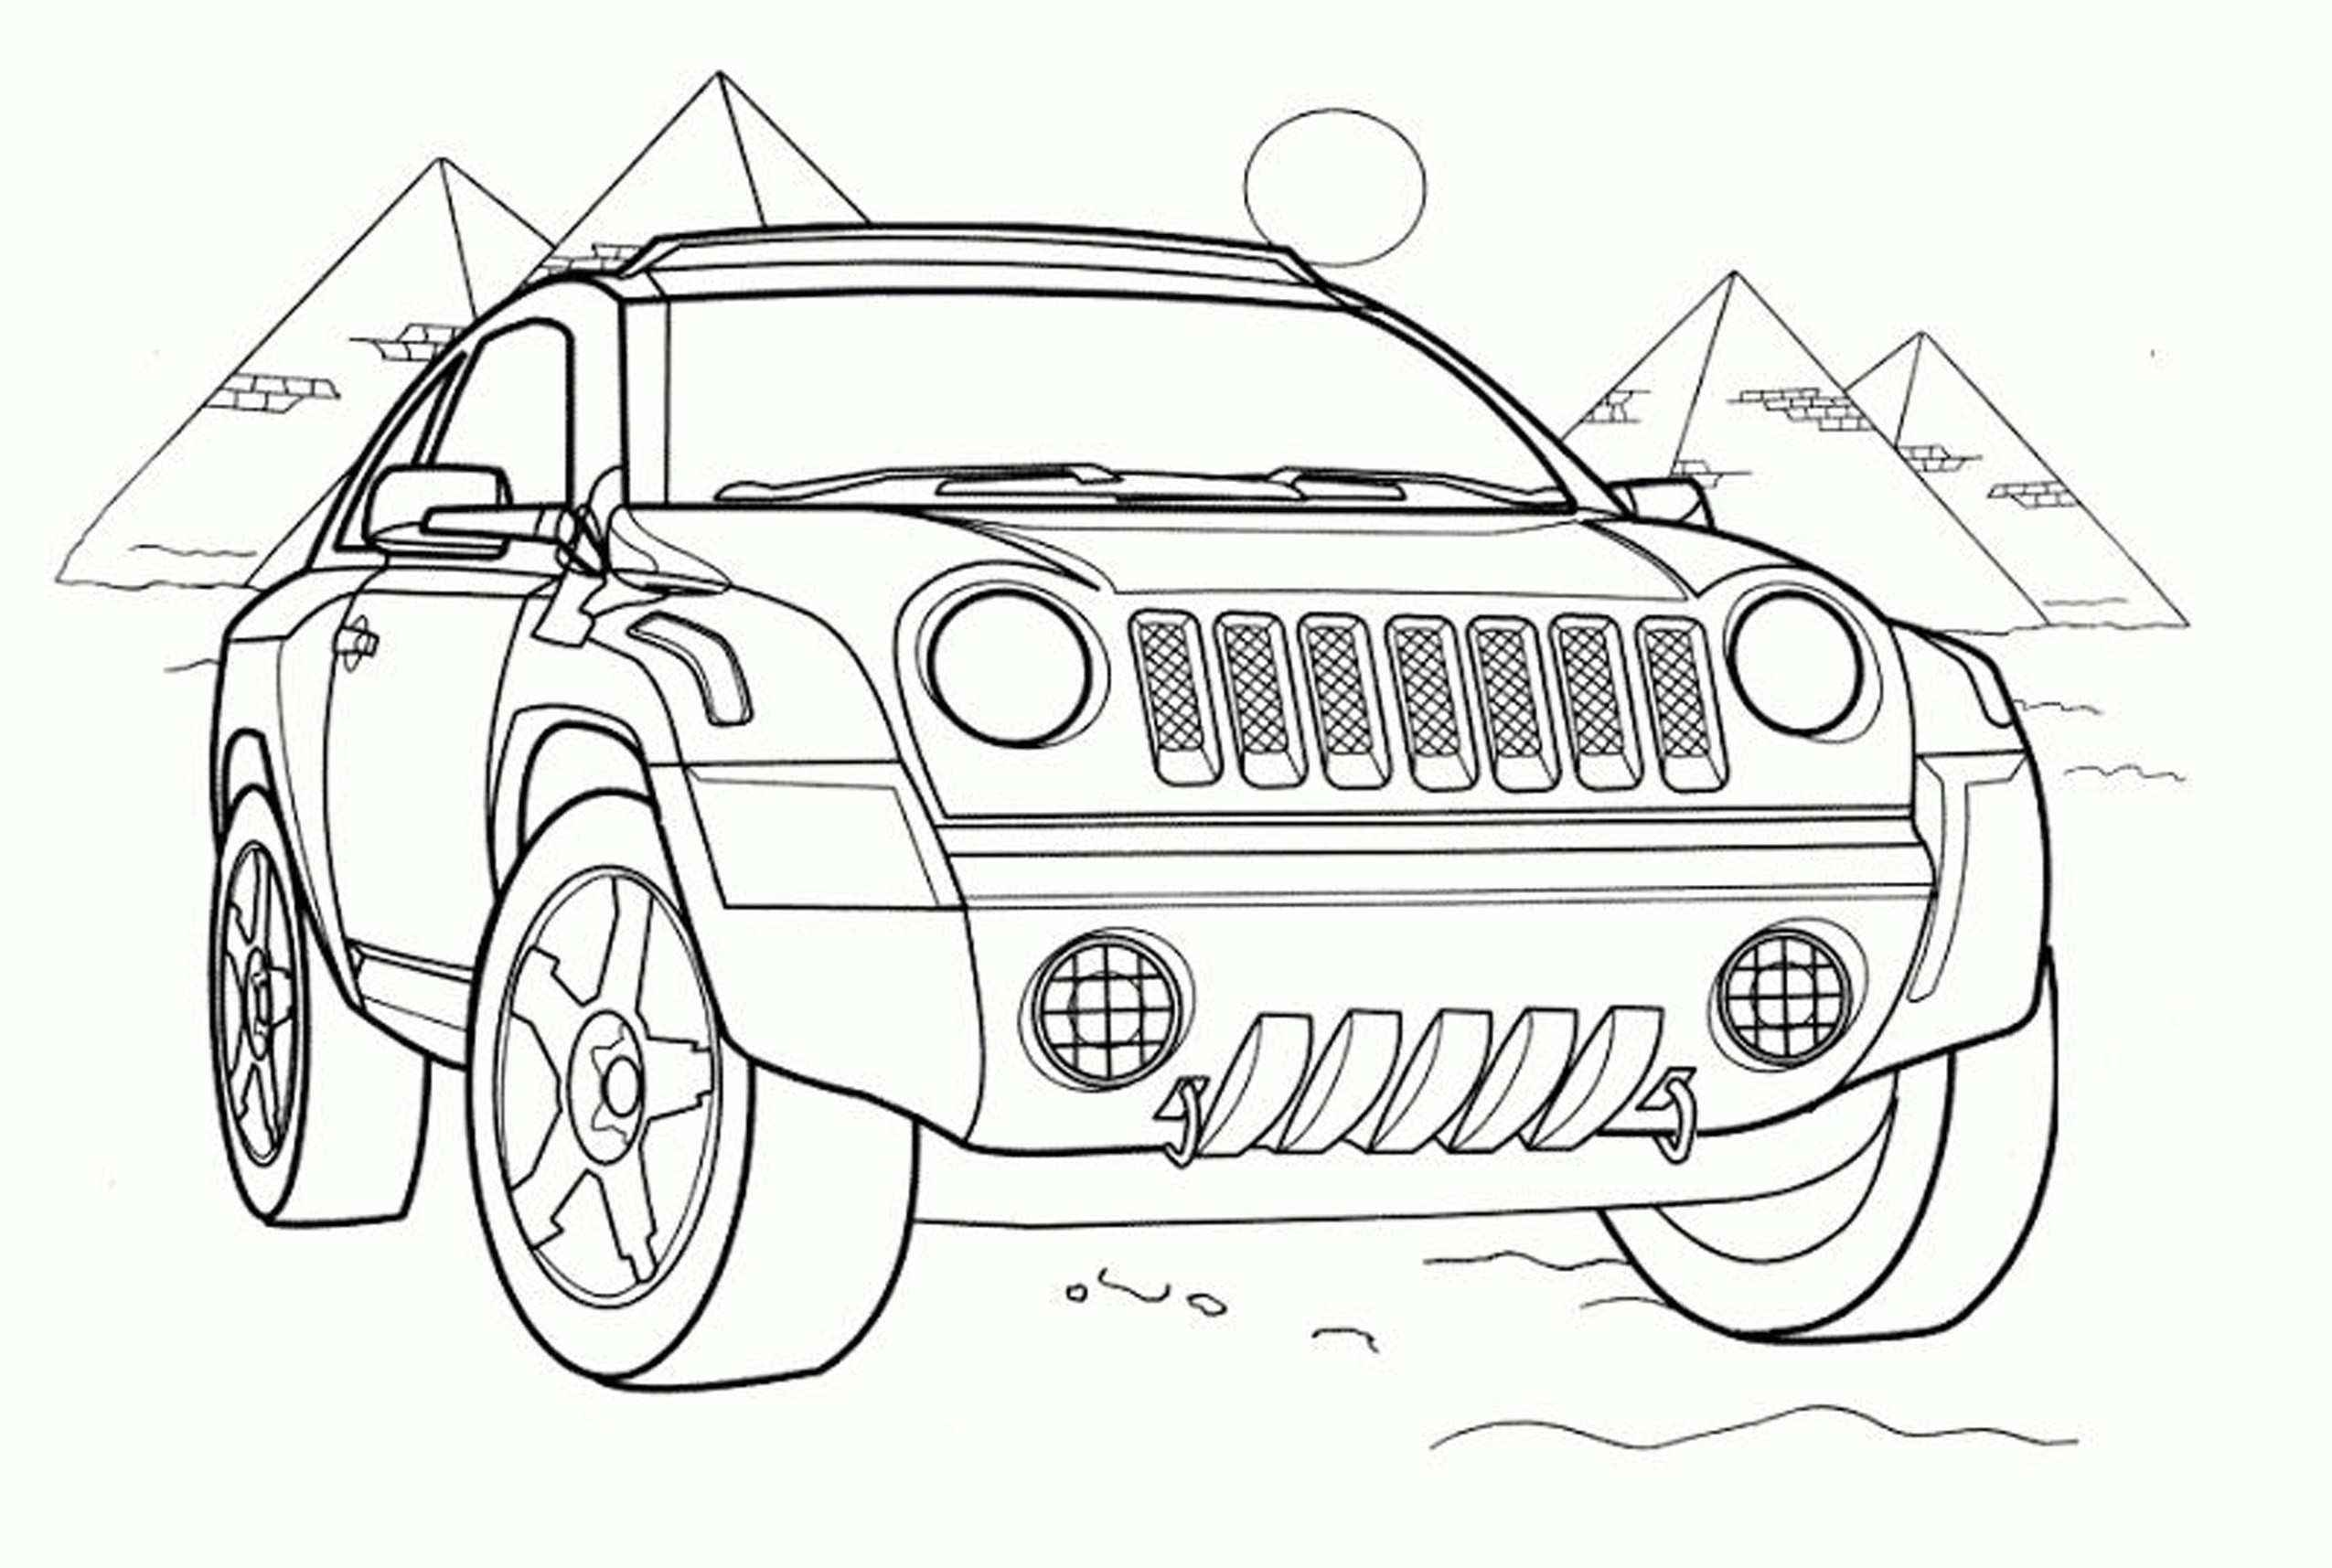 Best ideas about Car Coloring Pages For Girls . Save or Pin Cars Coloring Pages For Boys Kids Colouring grig3 Now.